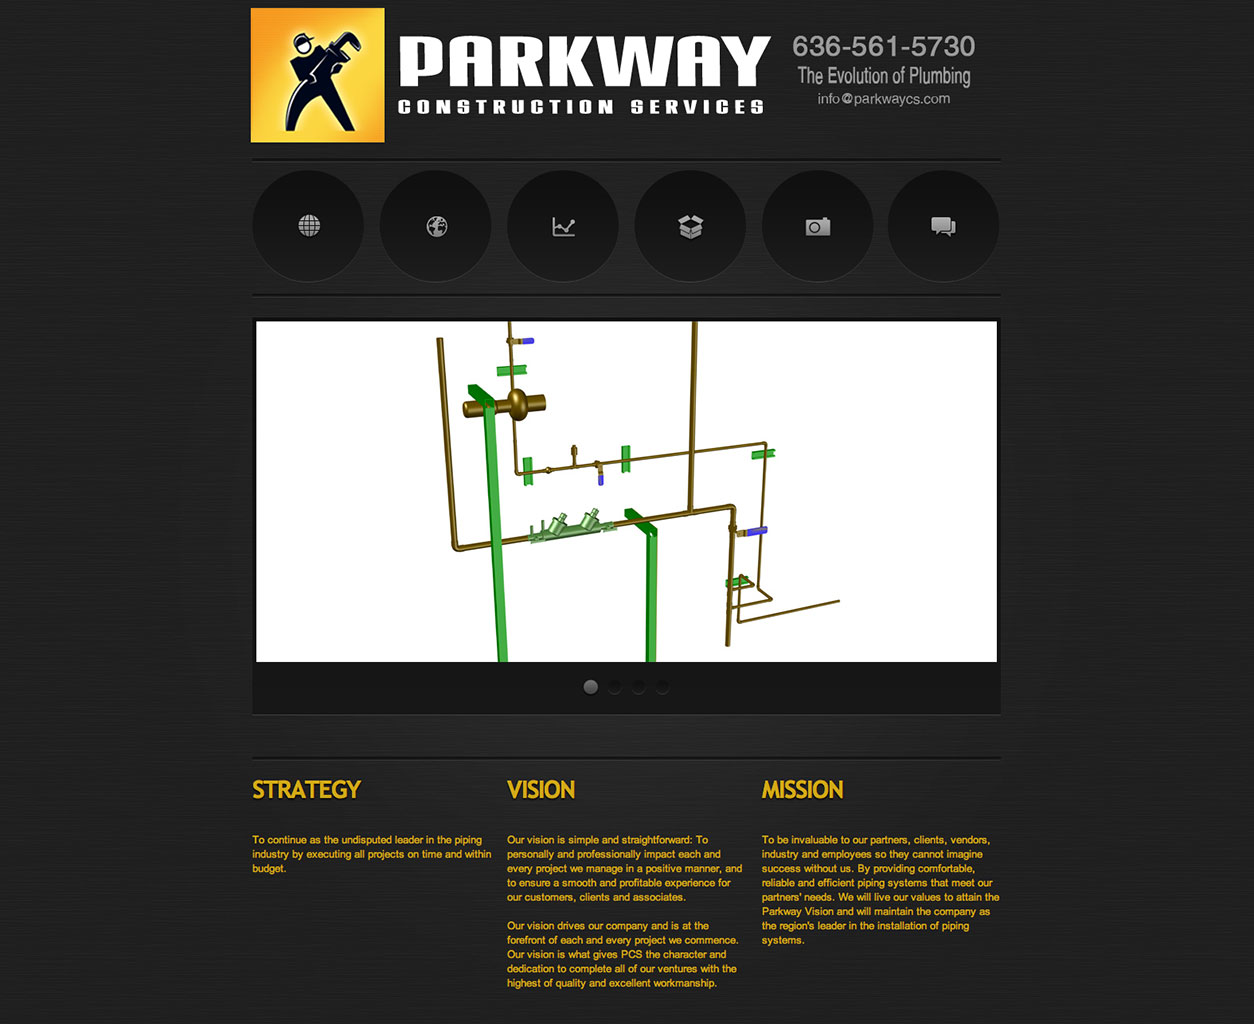 Parkway Construction Services